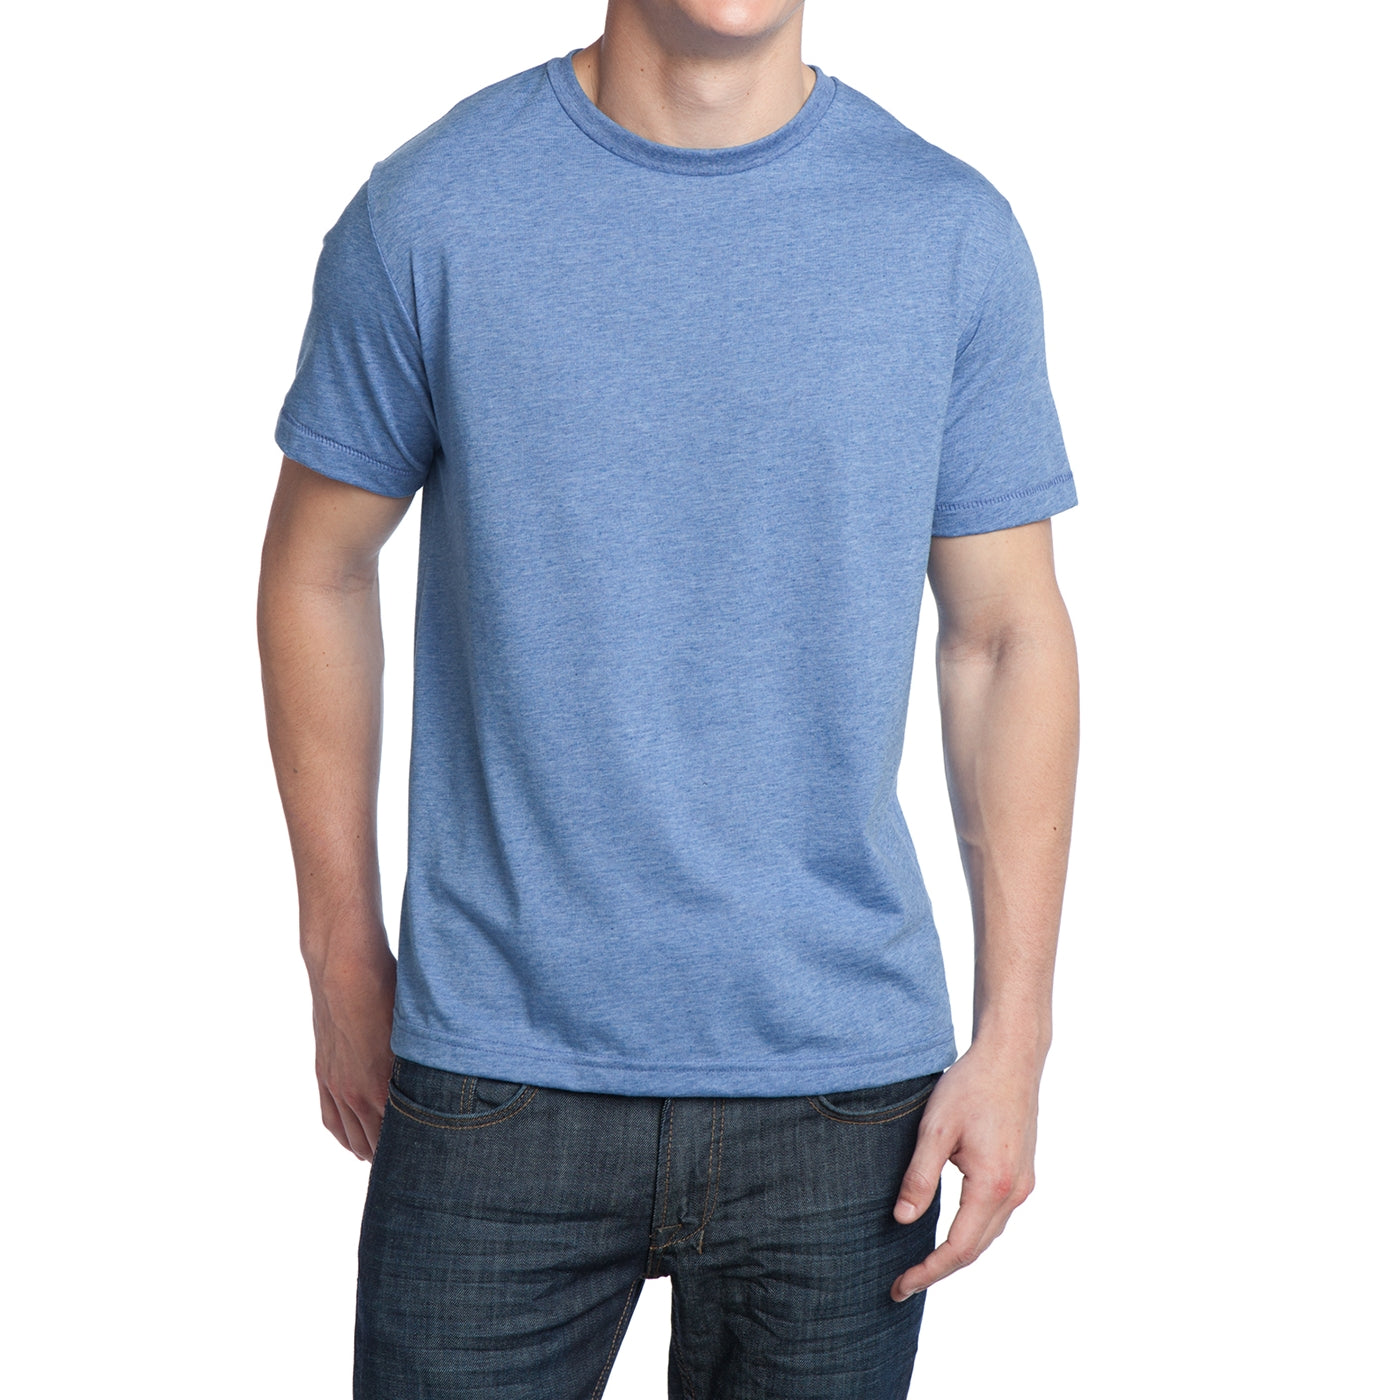 Men's Young Tri-Blend Crewneck Tee - Maritime Heather